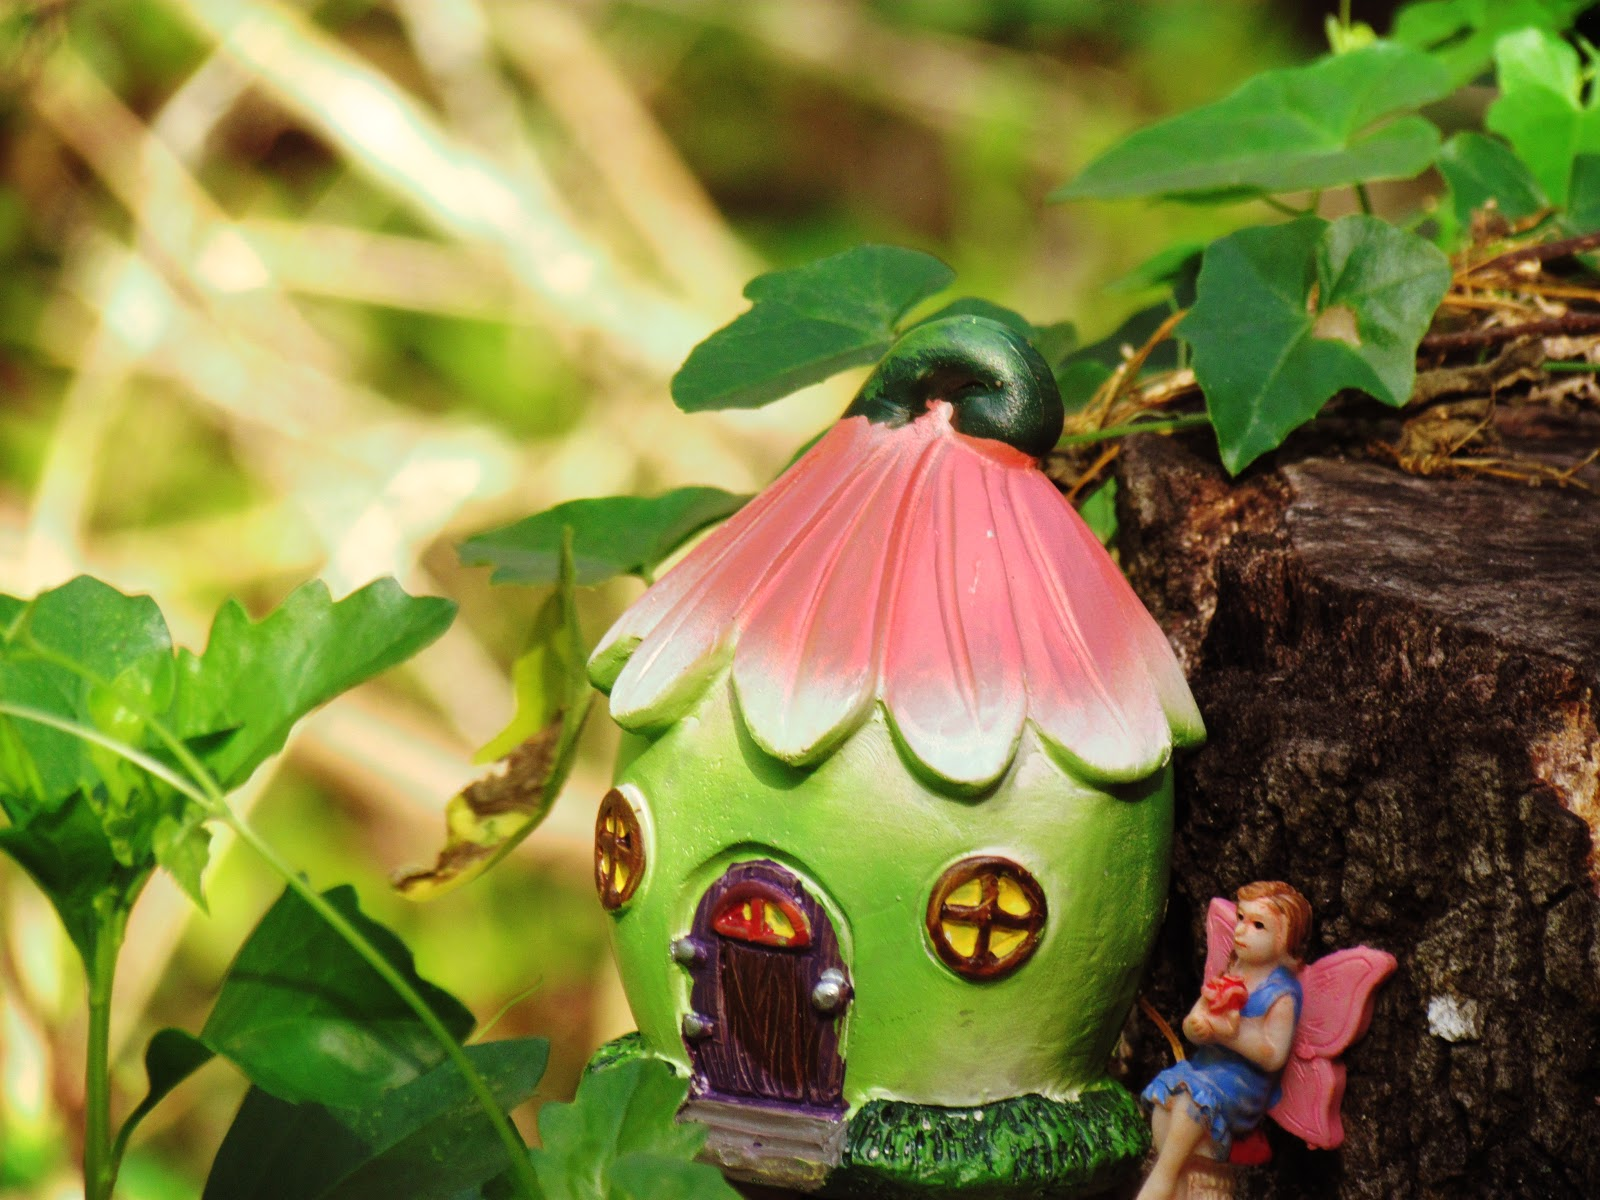 a fairy hiding on an oyster mushroom in the forest with a bright green fairy house on a meadow glen in mother nature + Florida wilderness